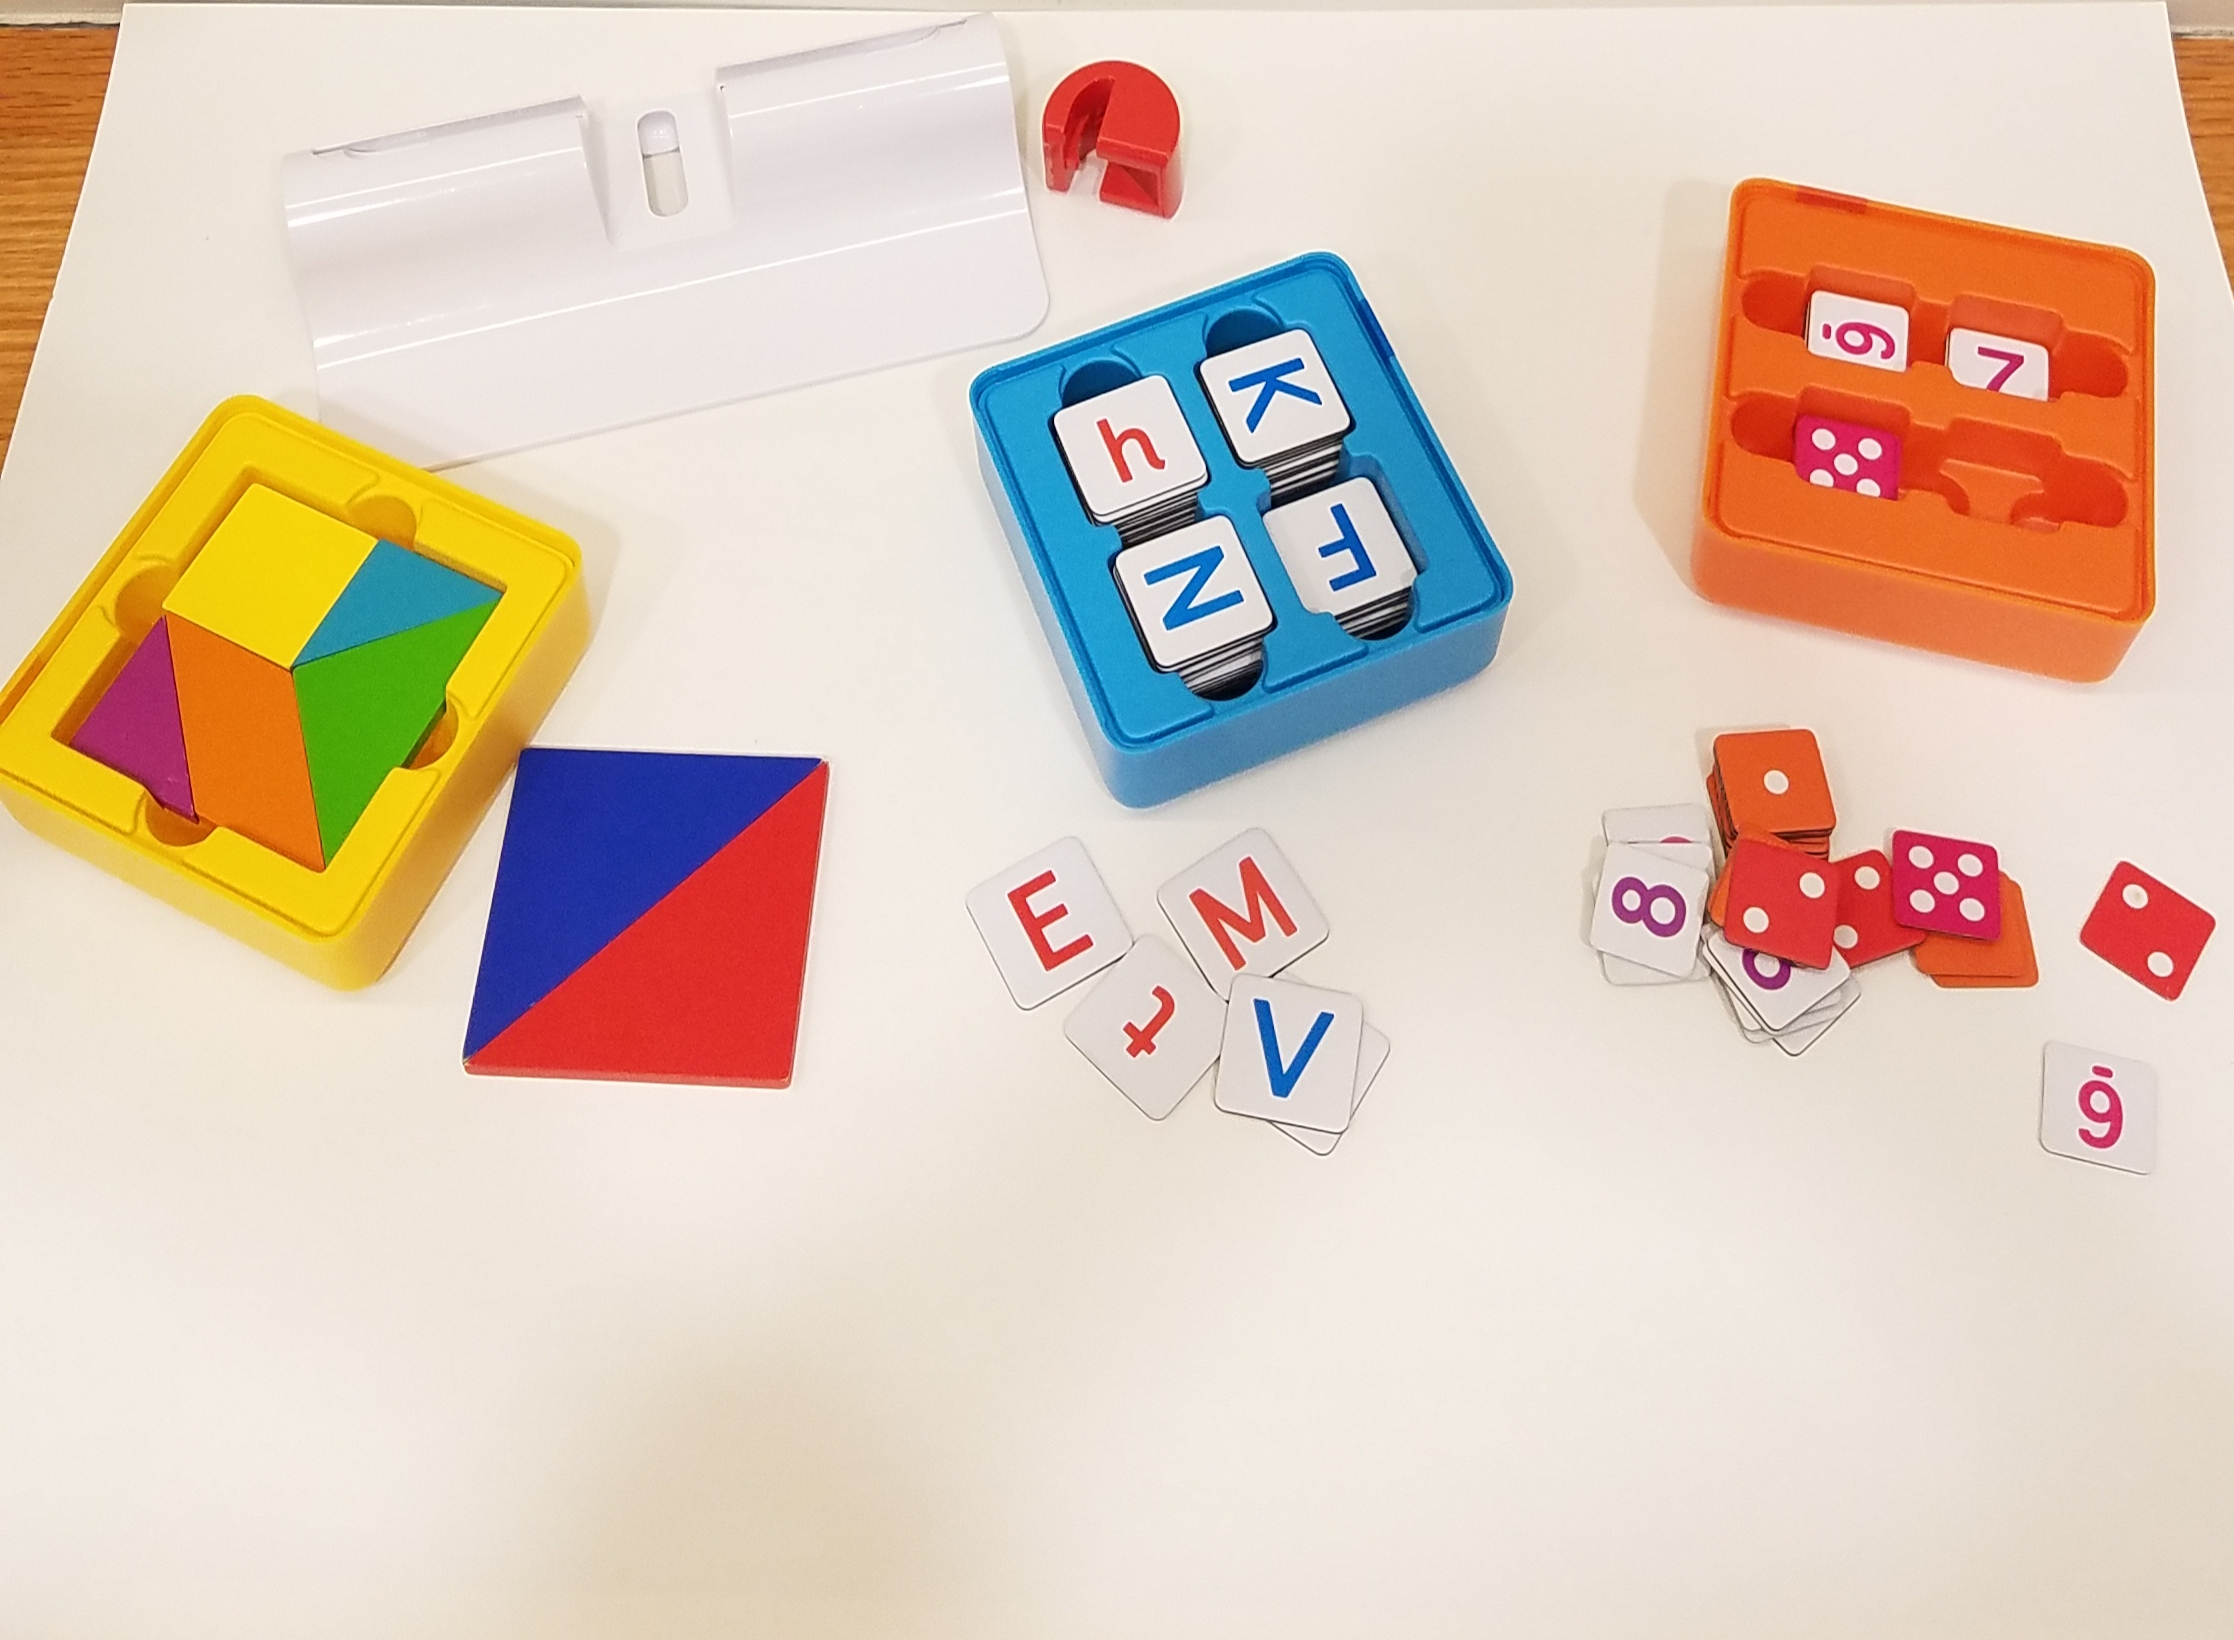 Osmo pieces for tangrams, recognizing letters and numbers